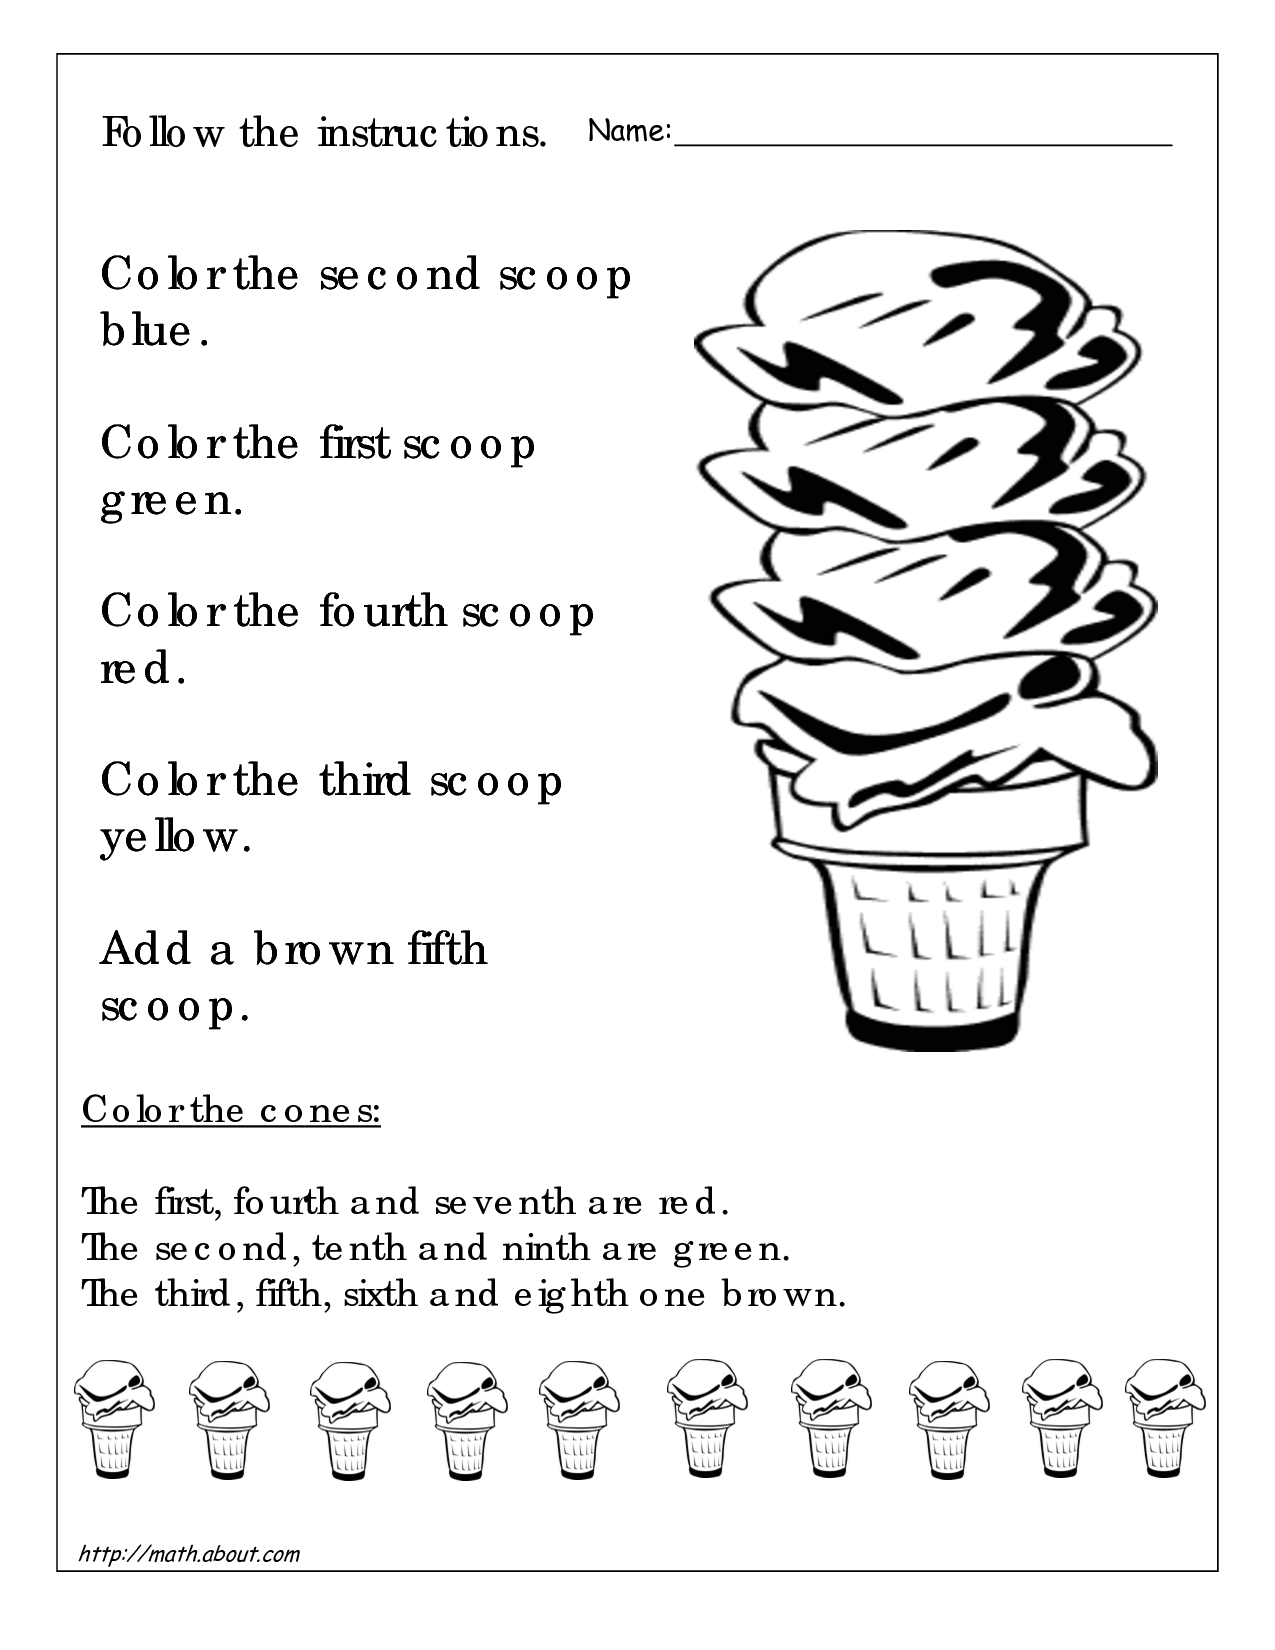 Math Worksheets For 3Rd Graders | 1St Grade Printable Worksheets For | 3Rd Grade Printable Worksheets